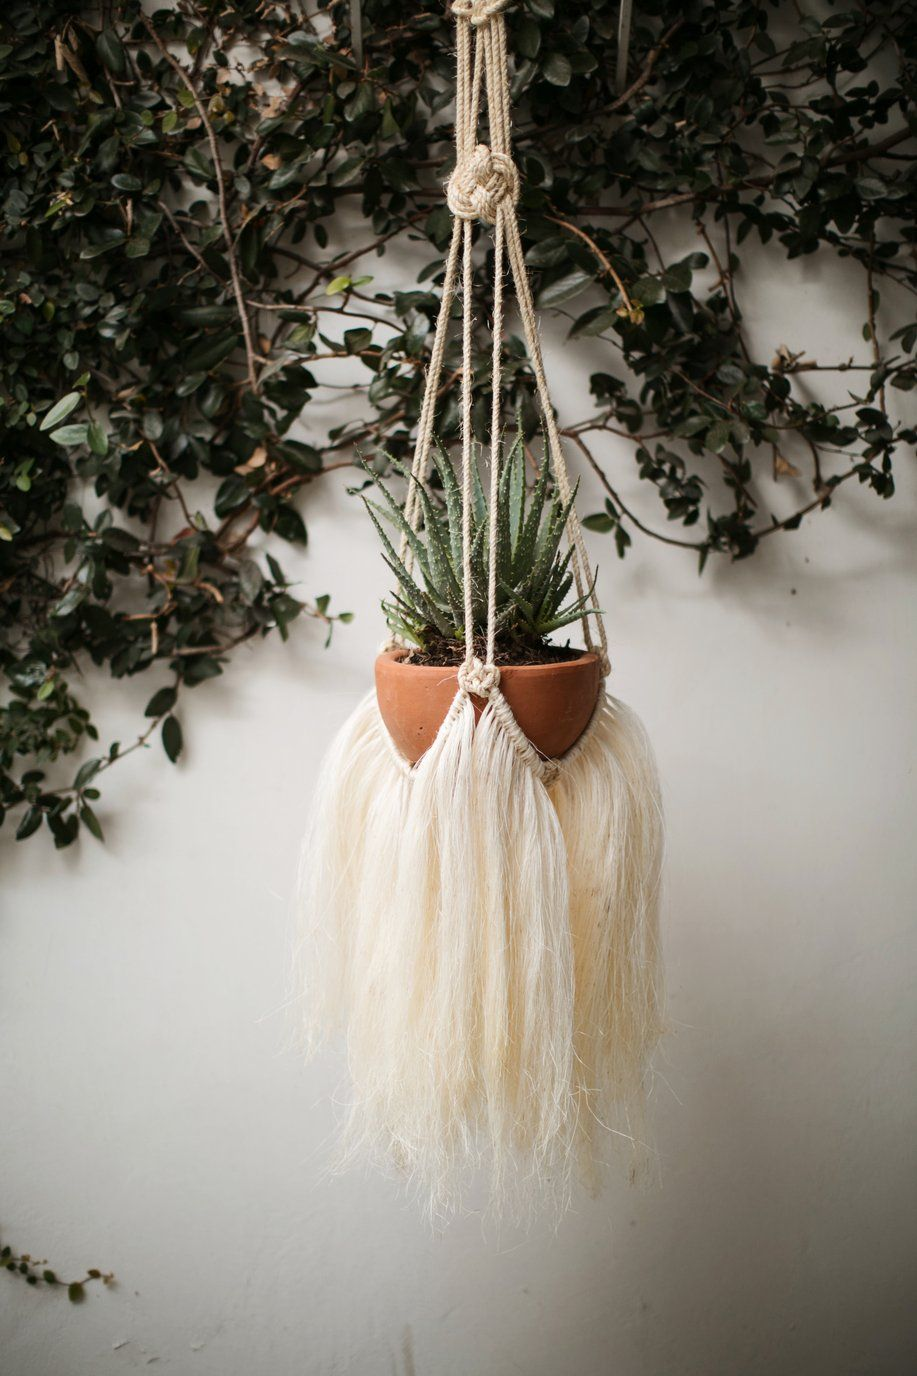 Henequen Macramé Plant Hanger is part of Diy plant hanger, Macrame plant hanger, Diy macrame plant hanger, Macrame plant hangers, Plant hanger, Macrame plant - Give your plants a new home in a jaw dropping macramé plant hanger  This super chic rendition of a macramé plant hanger is created using henequen sourced from the Yucatan  Sourcing the material is a laborious process  There are only a few henequen shredding farms that still exist in the Yucatan region  Once the agave is shredded the fibers are separated into long and short threads and vigorously combed to create the hairlike texture    Measurements 70  tall Planter not included  All items sold by Vía Raíz are handmade  Therefore they may have small  imperfections  or slight variations of color and design between each product—we think that is part of the beauty of having something made with care by individual artisans  Our website photos are a close representation of this piece, but may not be identical to the one you receive